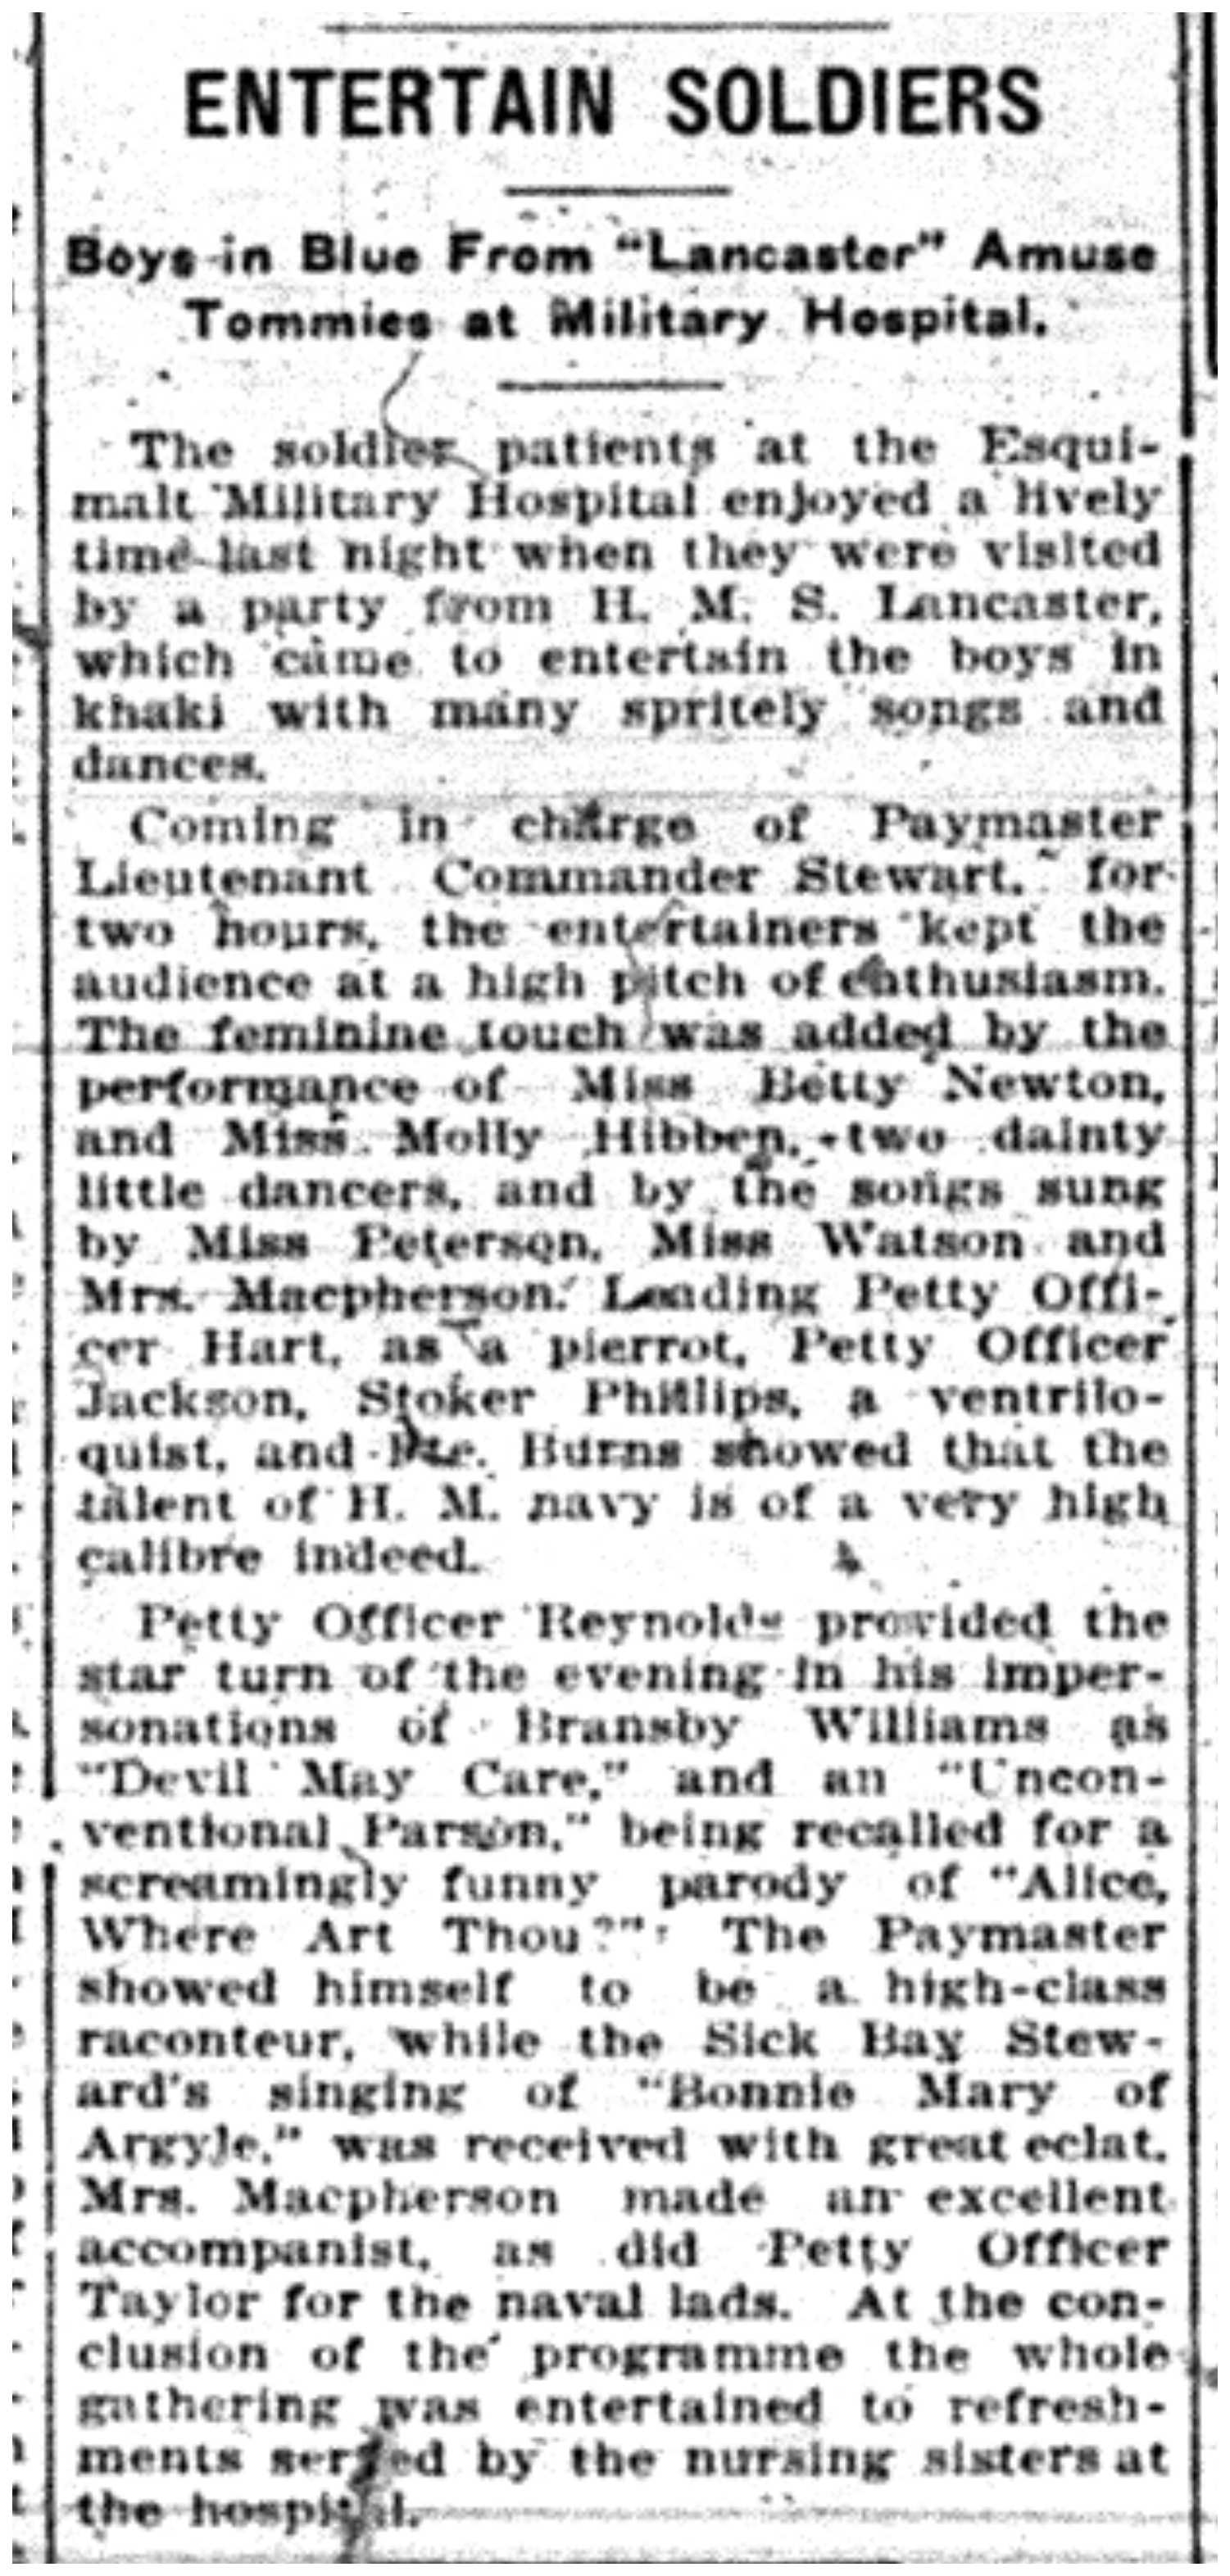 """Entertain Soldiers: Boys in Blue from ""Lancaster"" Amuse Tommies at Military Hospital"""